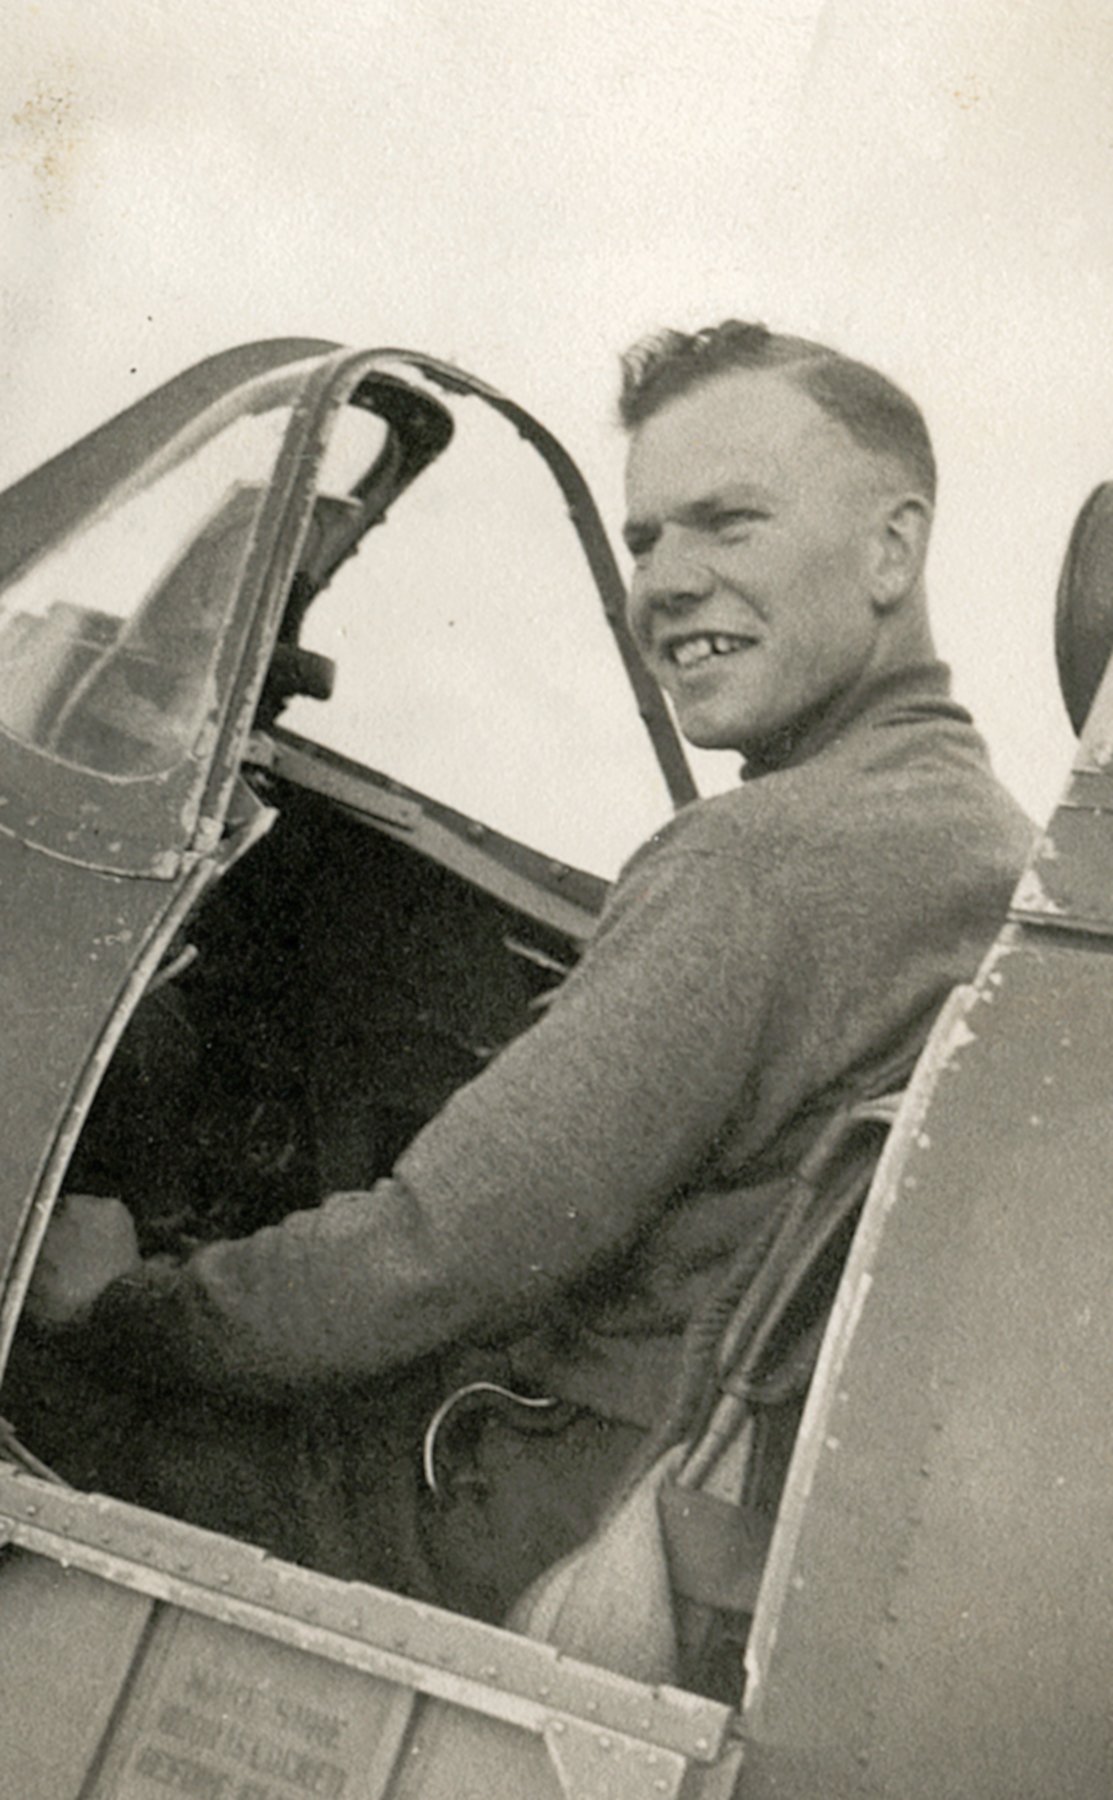 RAF Spitfire MkI and self portrait of Patrick Hayes who was later KIA July 7 1940 01